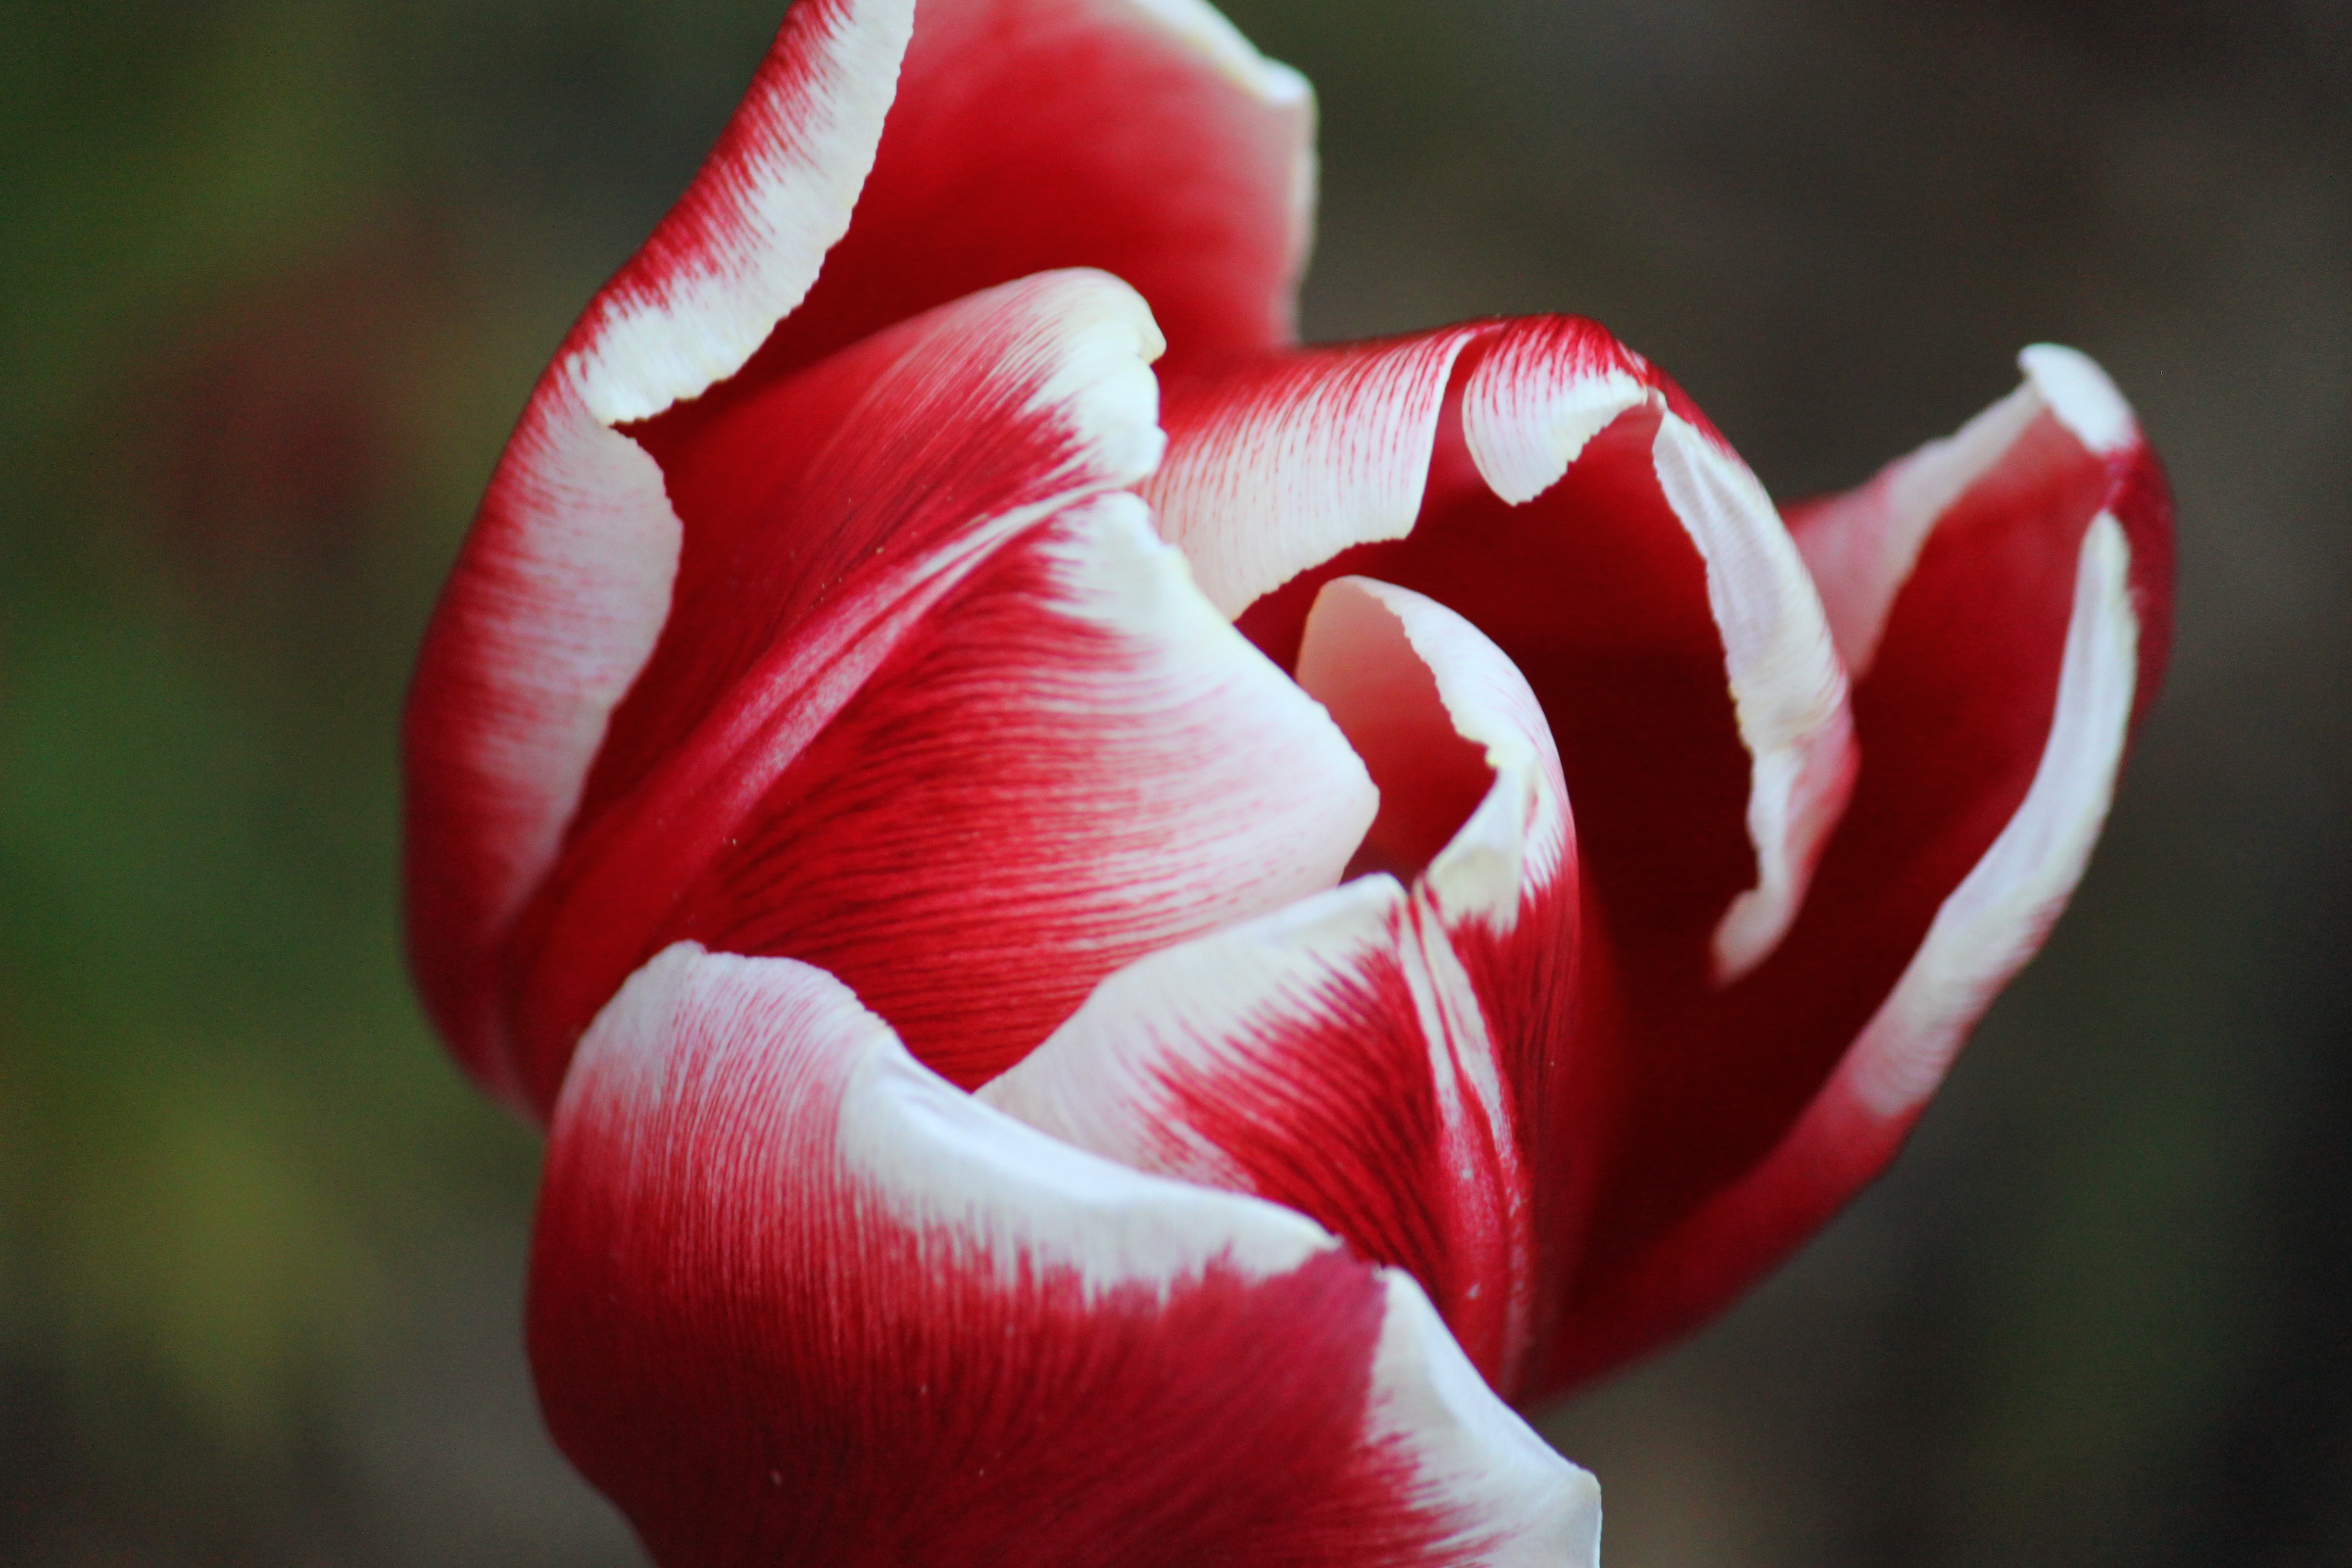 floral, photography, tulip, flower